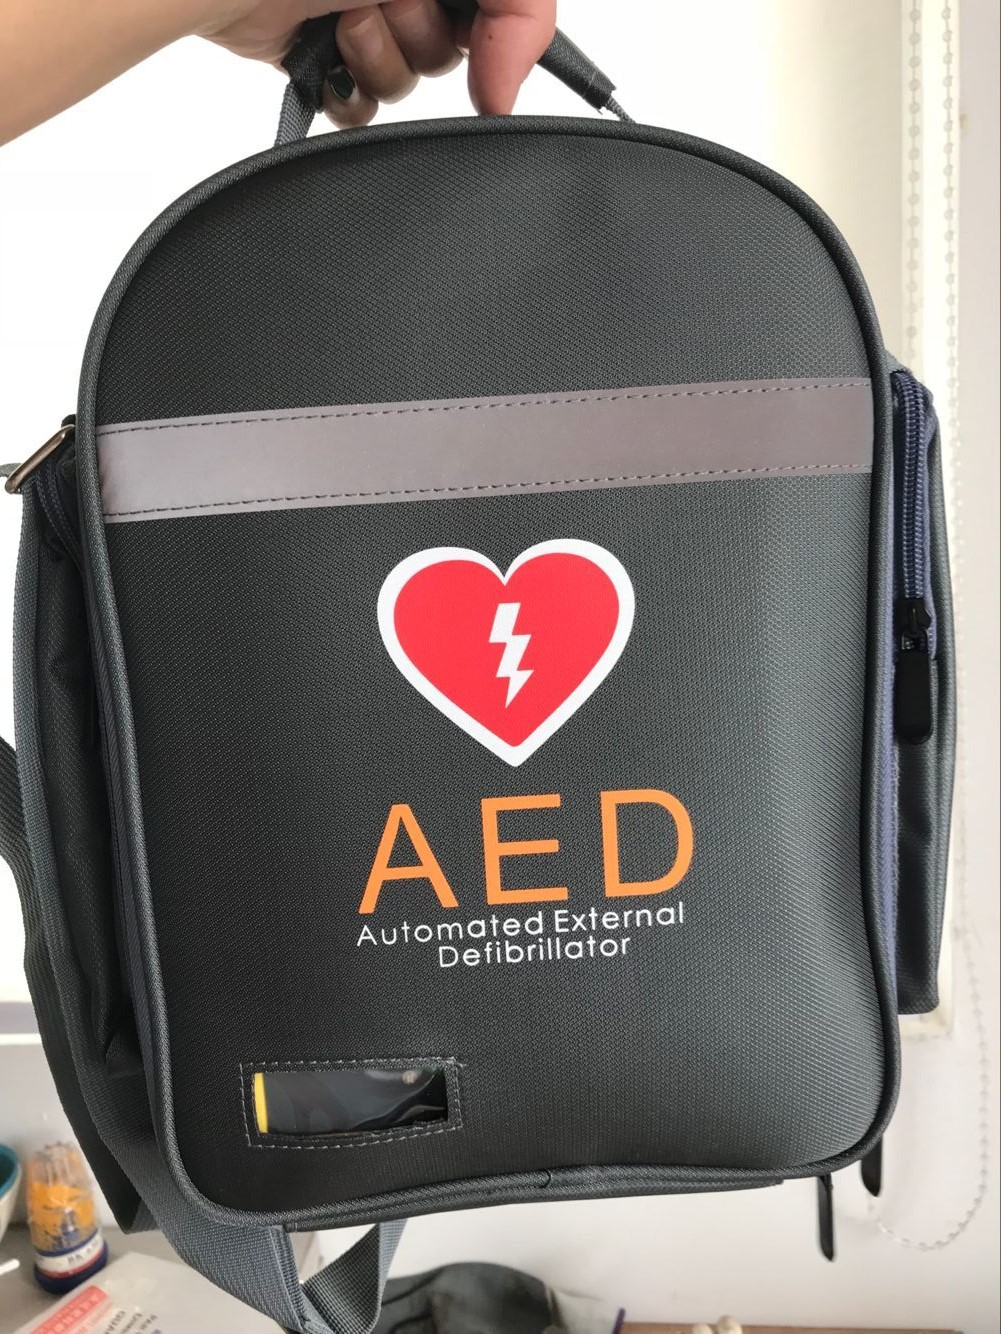 AED Portable Automated External Defibrillator YS-AED7000